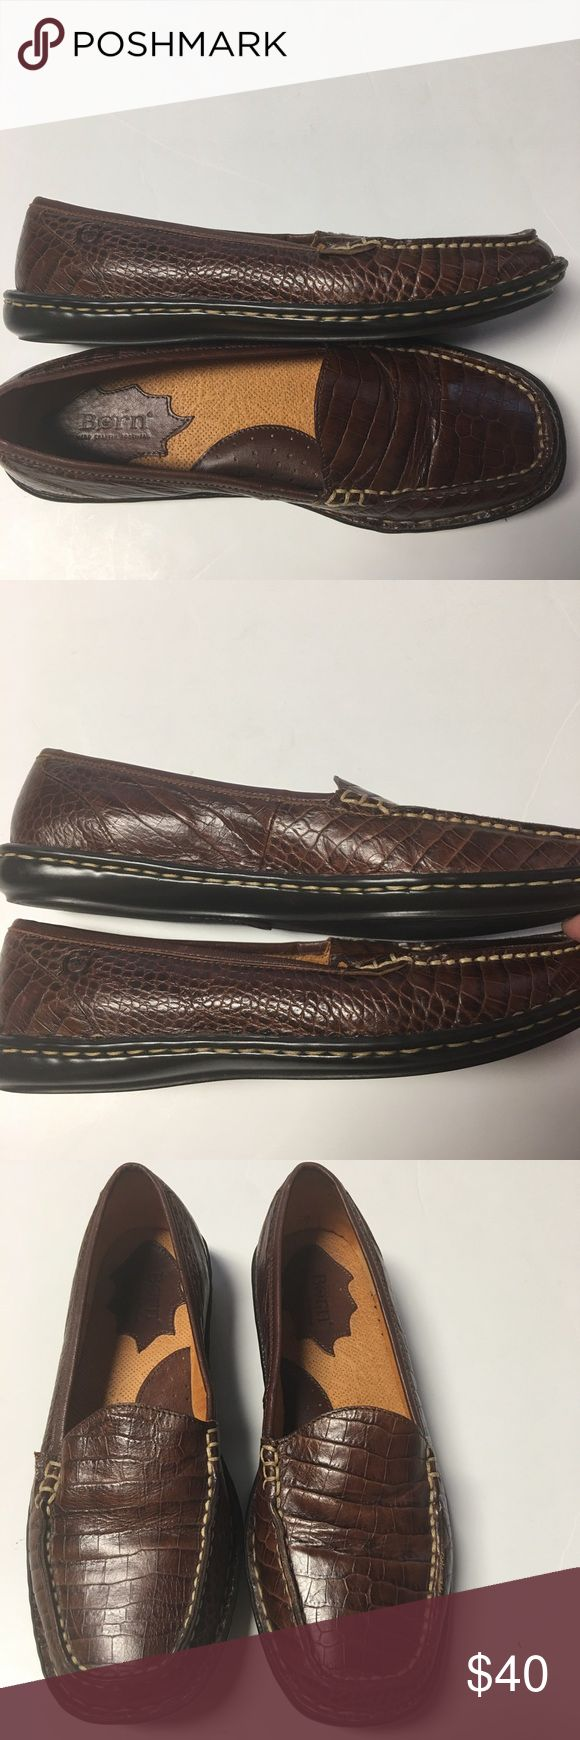 Born Brown Leather Loafer Slip Ons Animal print leather in a loafer style slip on. Interior arch support. Other than a small skiff on the sole at the back heel, these look entirely unworn. In outstanding condition. These are tagged as a size 8/39, which varies slightly from this Posh sizing. These are closer to an 8 than a 39(9), imo. If you are familiar with your own sizing in Børn shoes, you'll likely know for yourself as well. Born Shoes Flats & Loafers